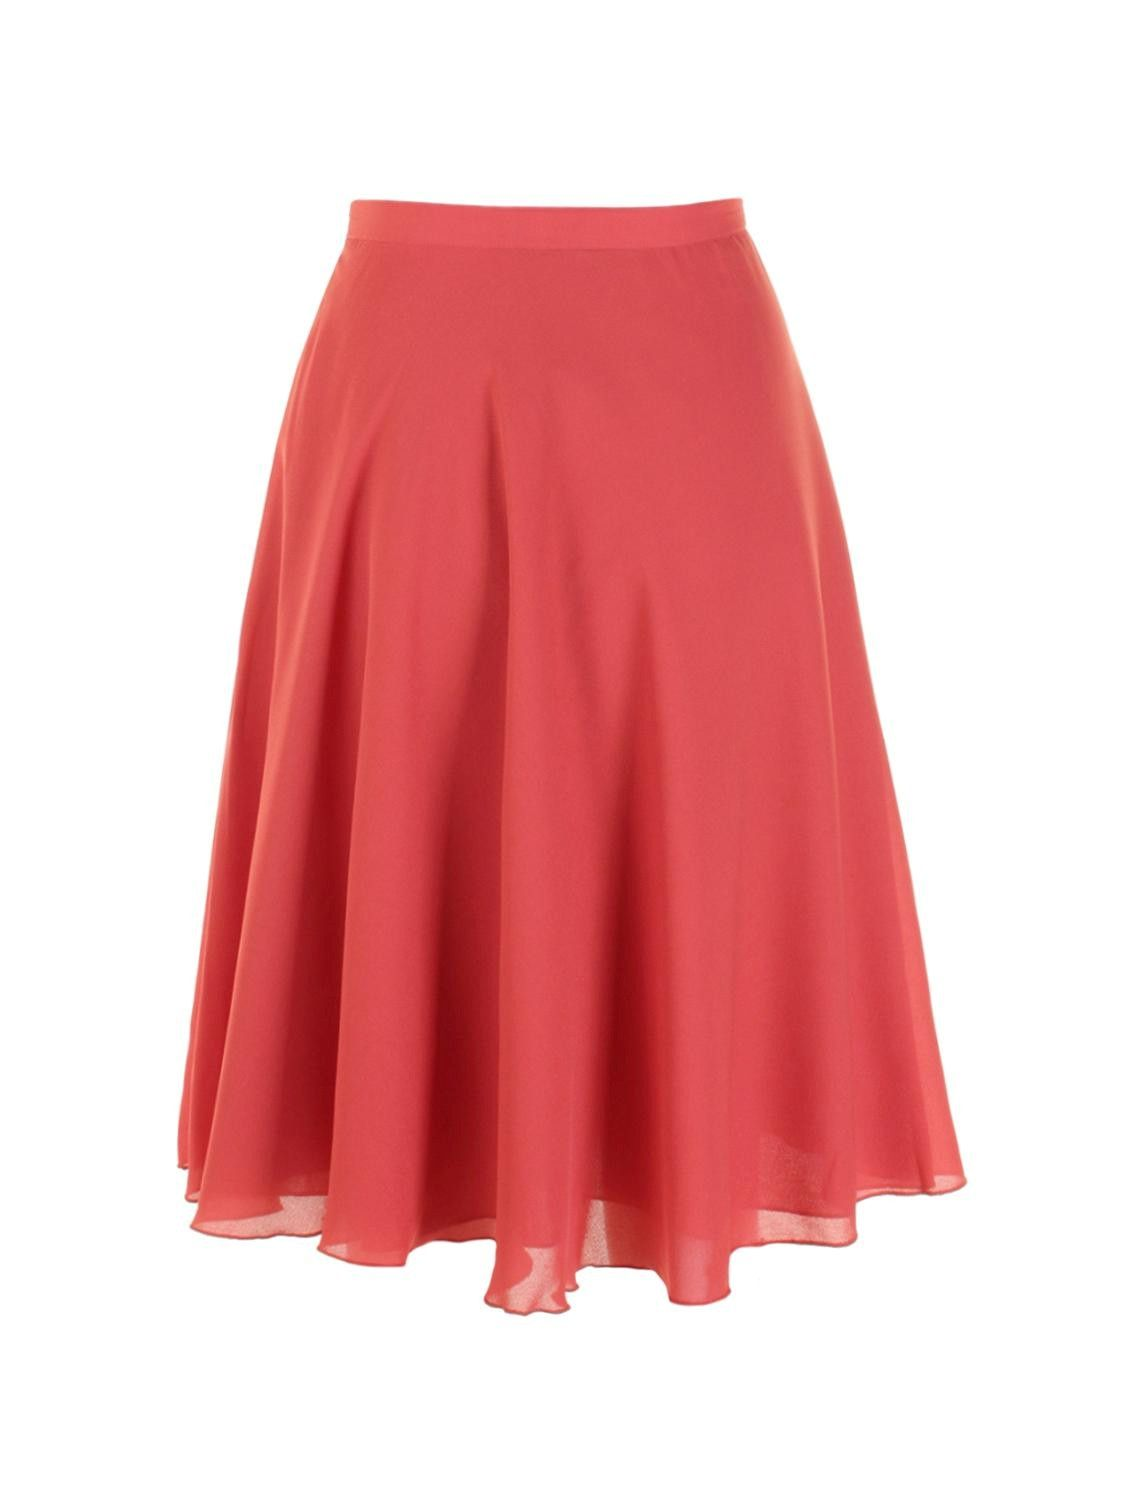 5eebbefcb7 Fluted Midi Skirt - Red | Missionary!!! | Skirts, Skirt fashion, Fashion